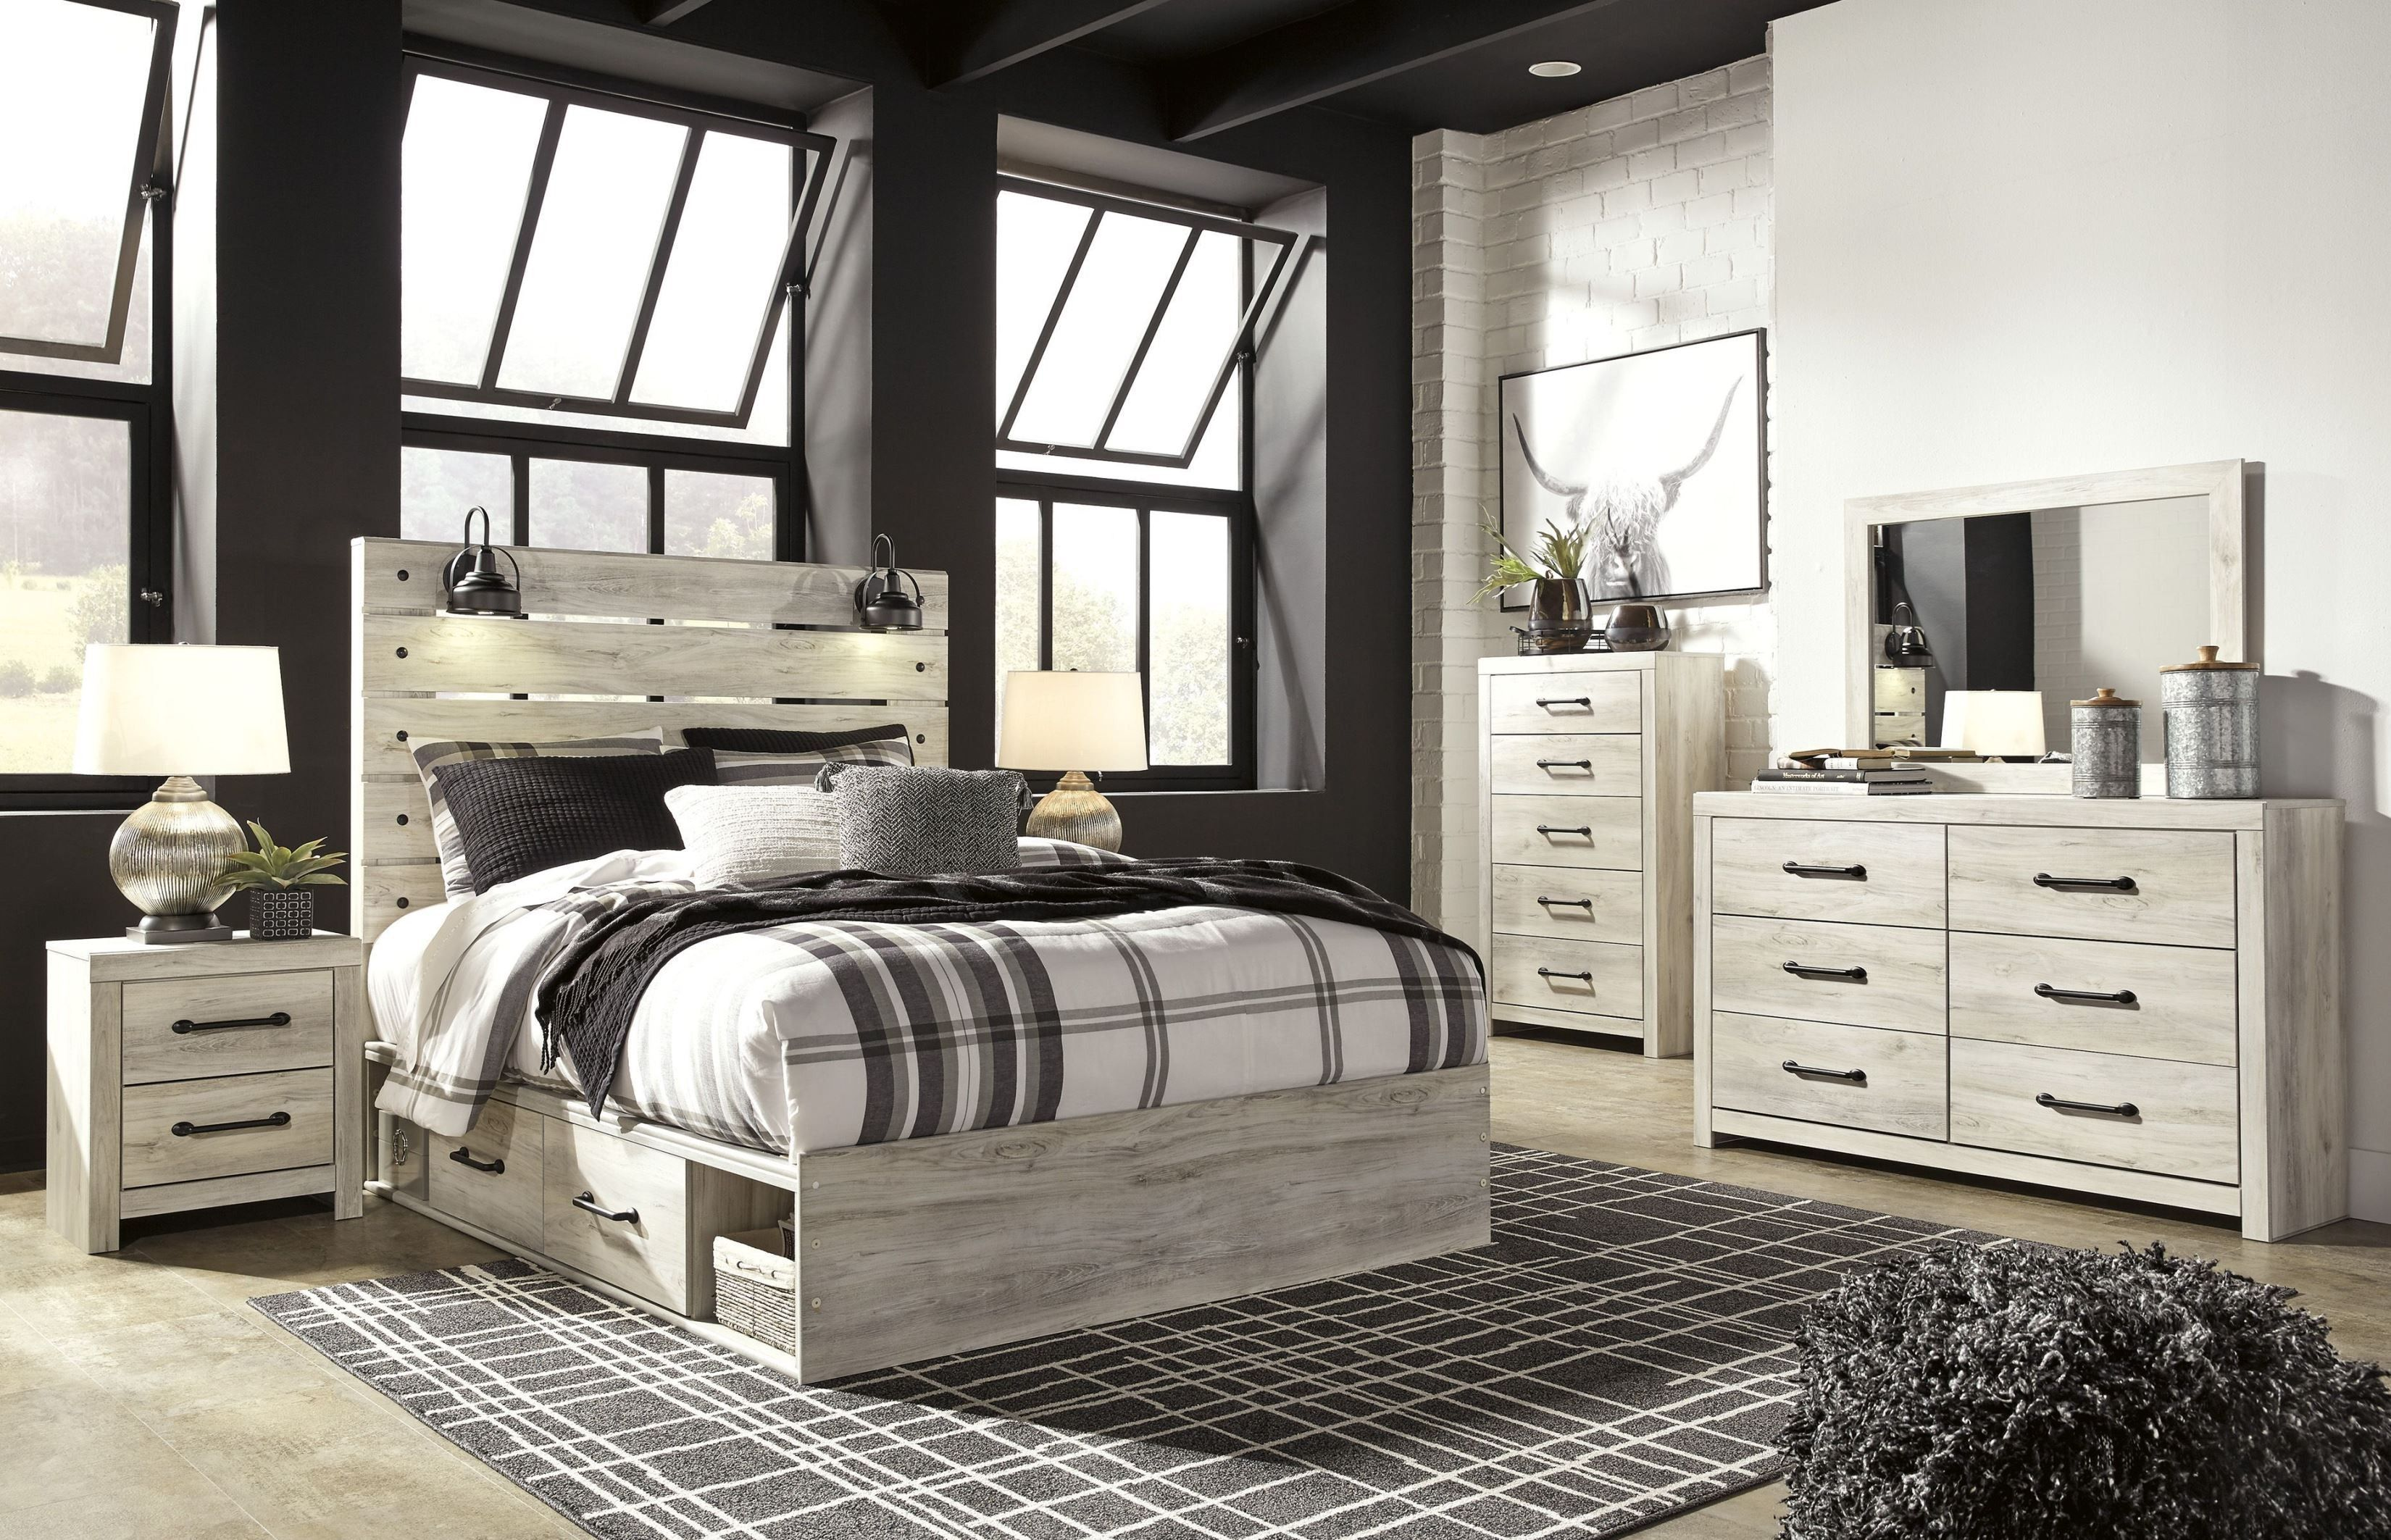 Cambeck Whitewash Panel Bedroom Set With Underbed Storage Bedroom Sets Queen Bedroom Set King Bedroom Sets